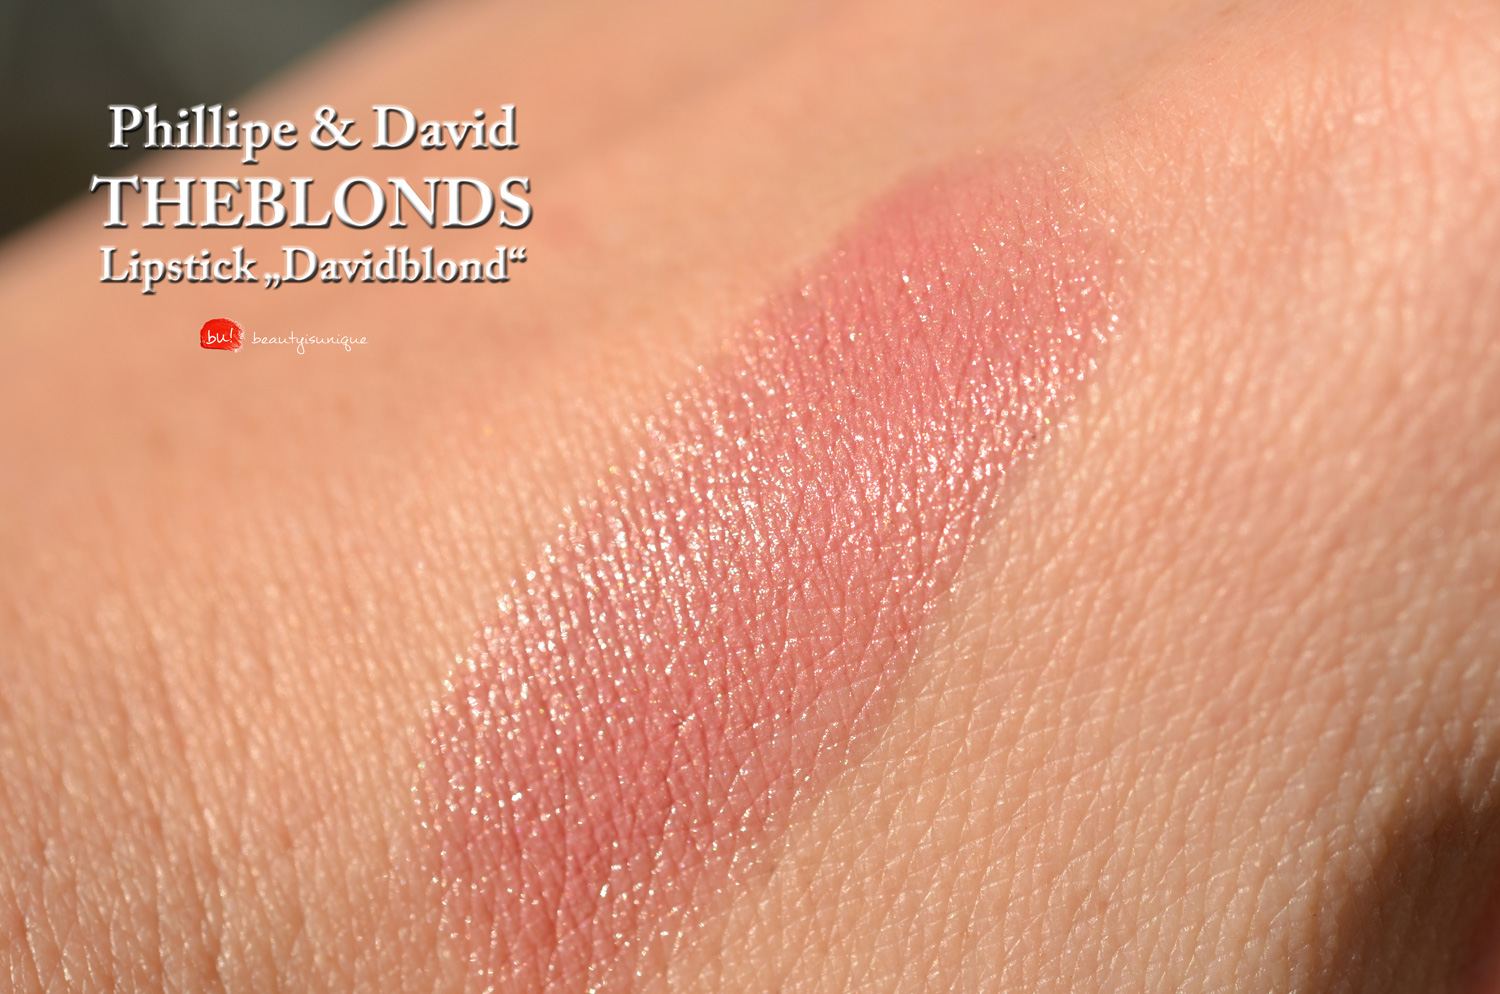 mac-phillipe-and-david-theblonds-davidblond-swatches